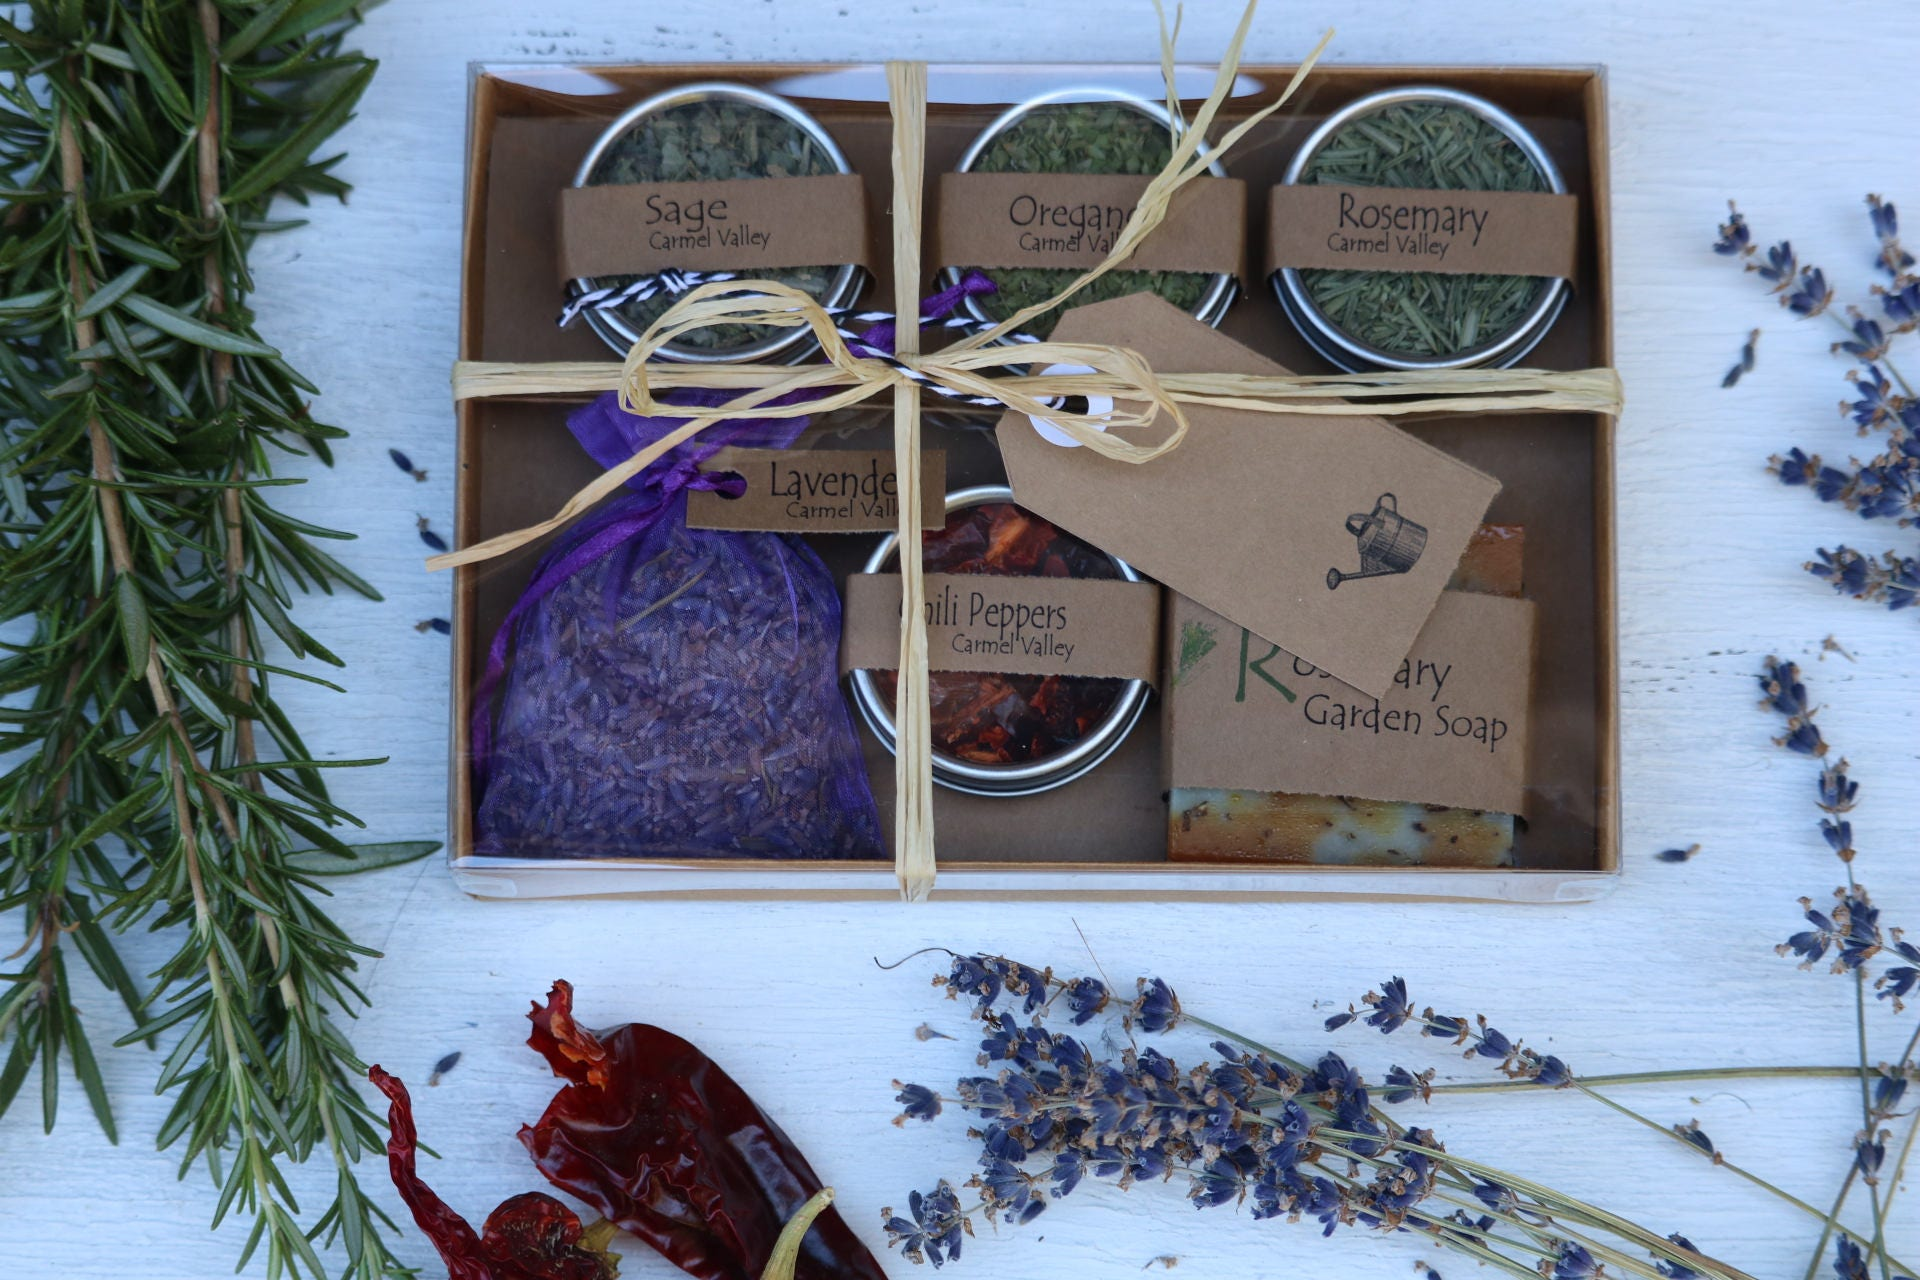 dried herbs and rosemary garden soap gardening gift gifts for